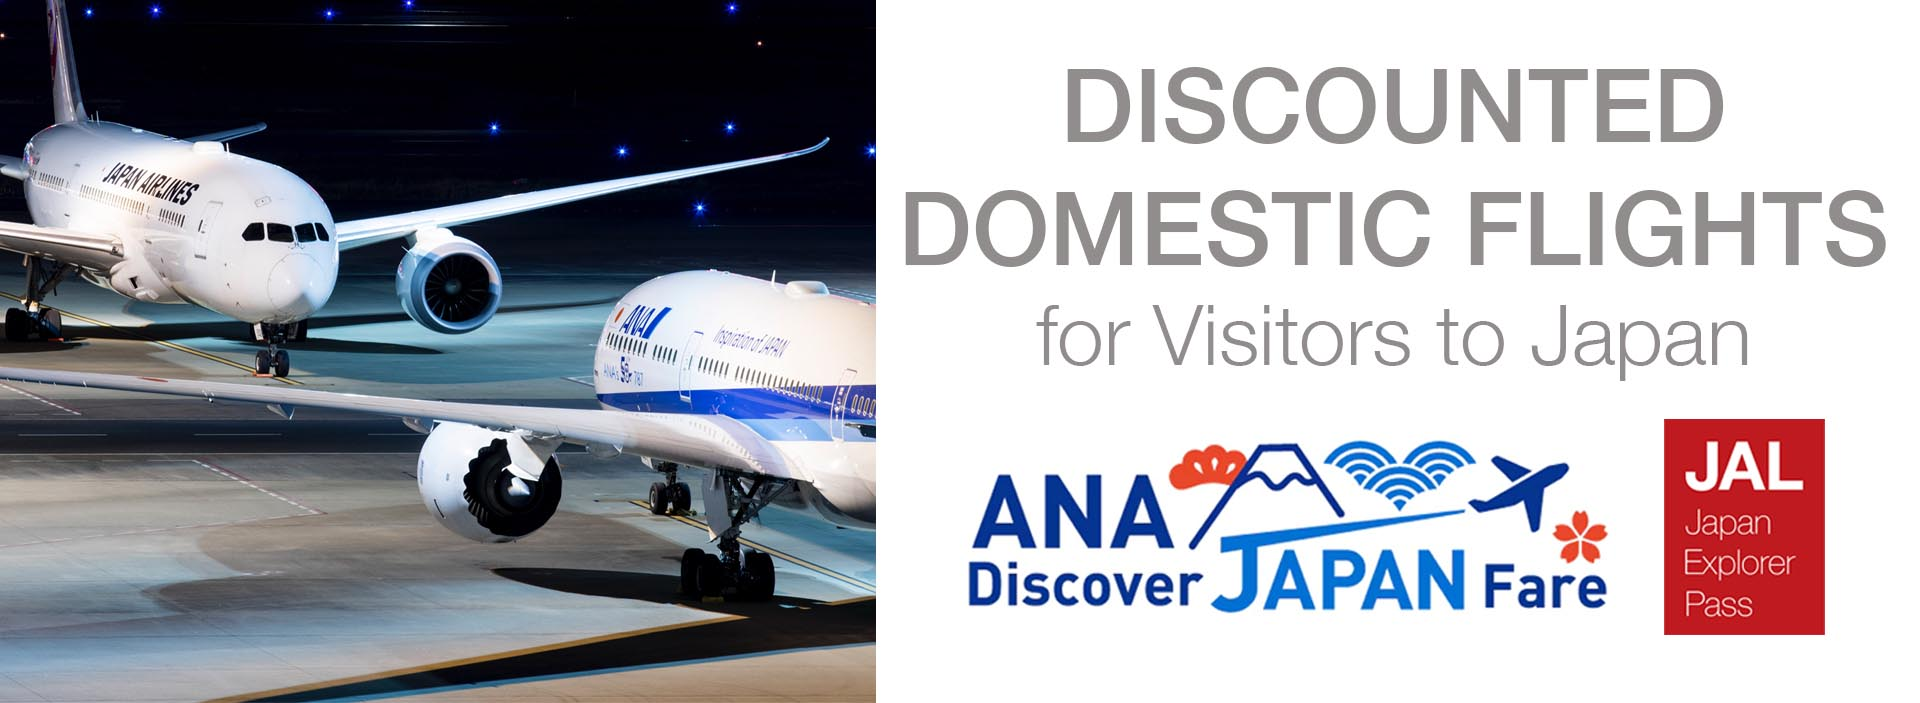 ANA Discover Japan and JAL Japan Explorer Pass: Discounted Domestic Flights for Visitors to Japan